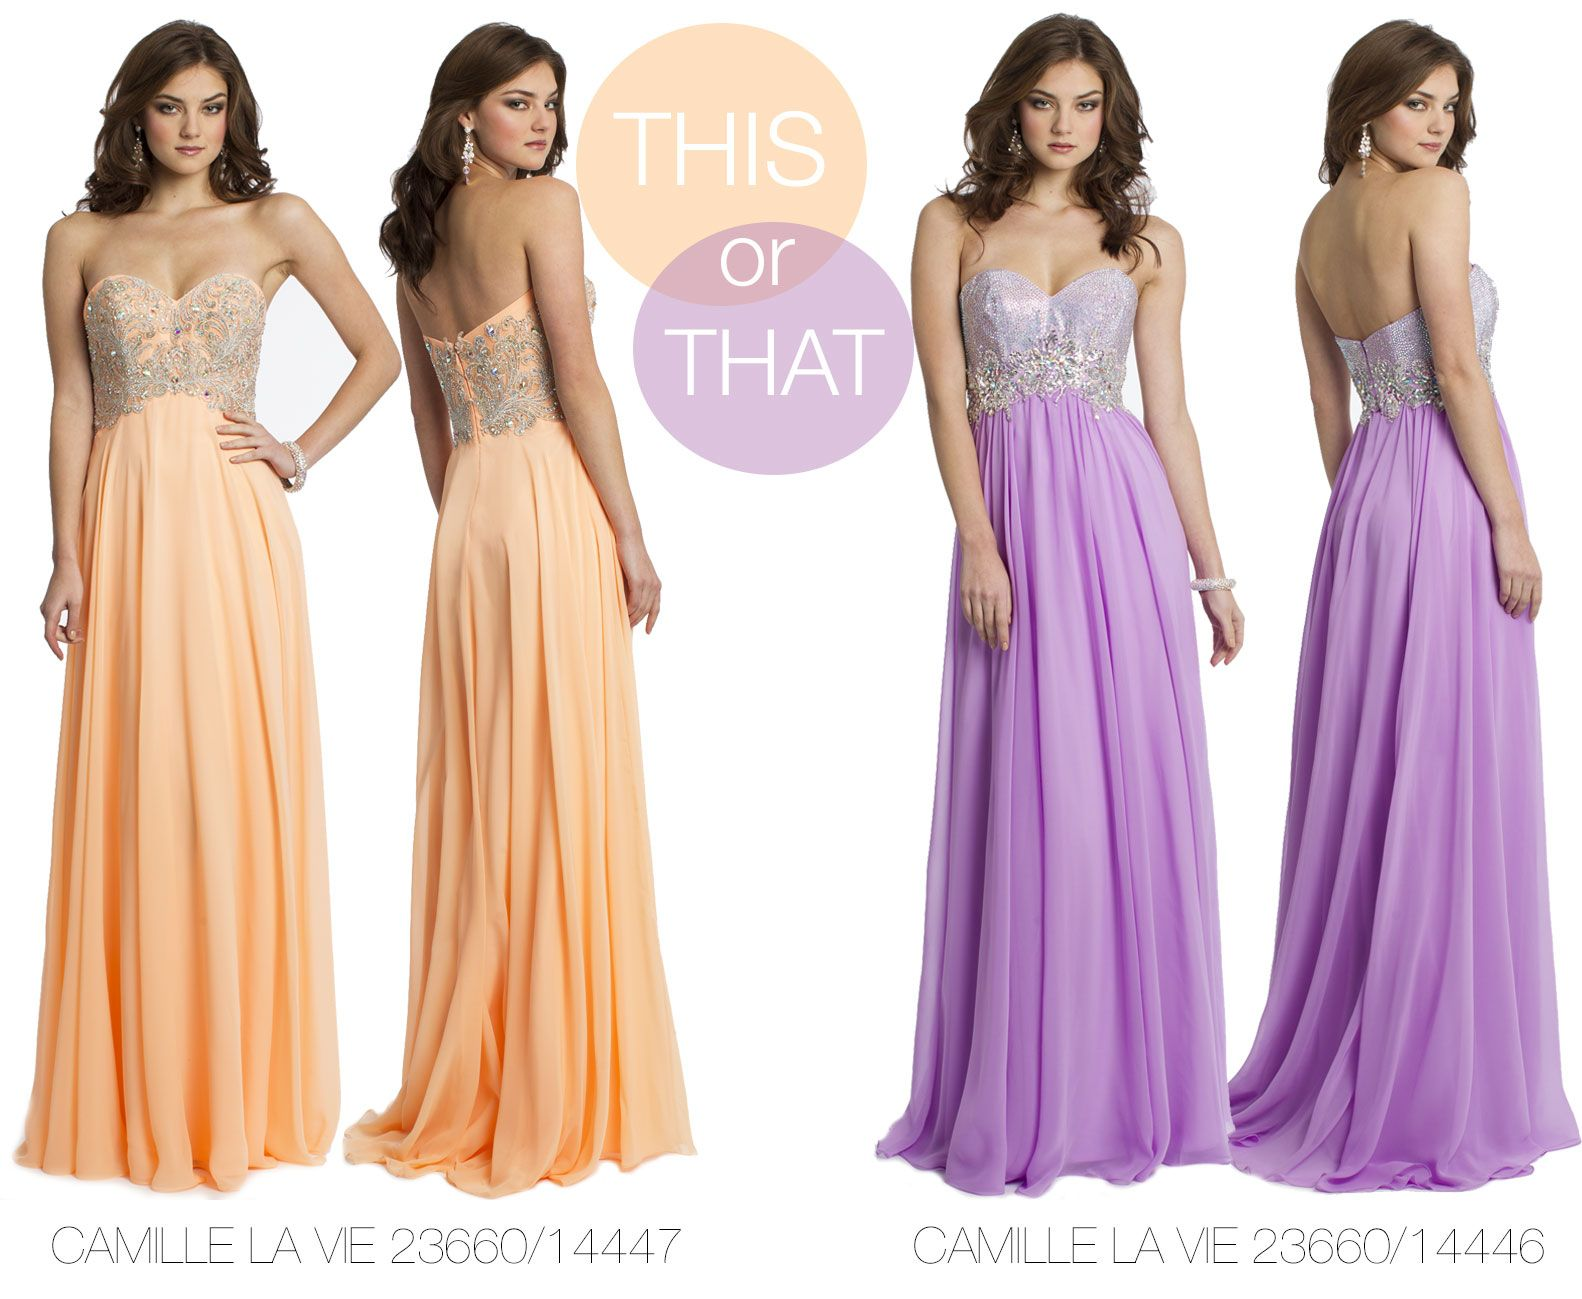 Camille La Vie Strapless Prom Dresses with Beautiful Bedazzled Bodices